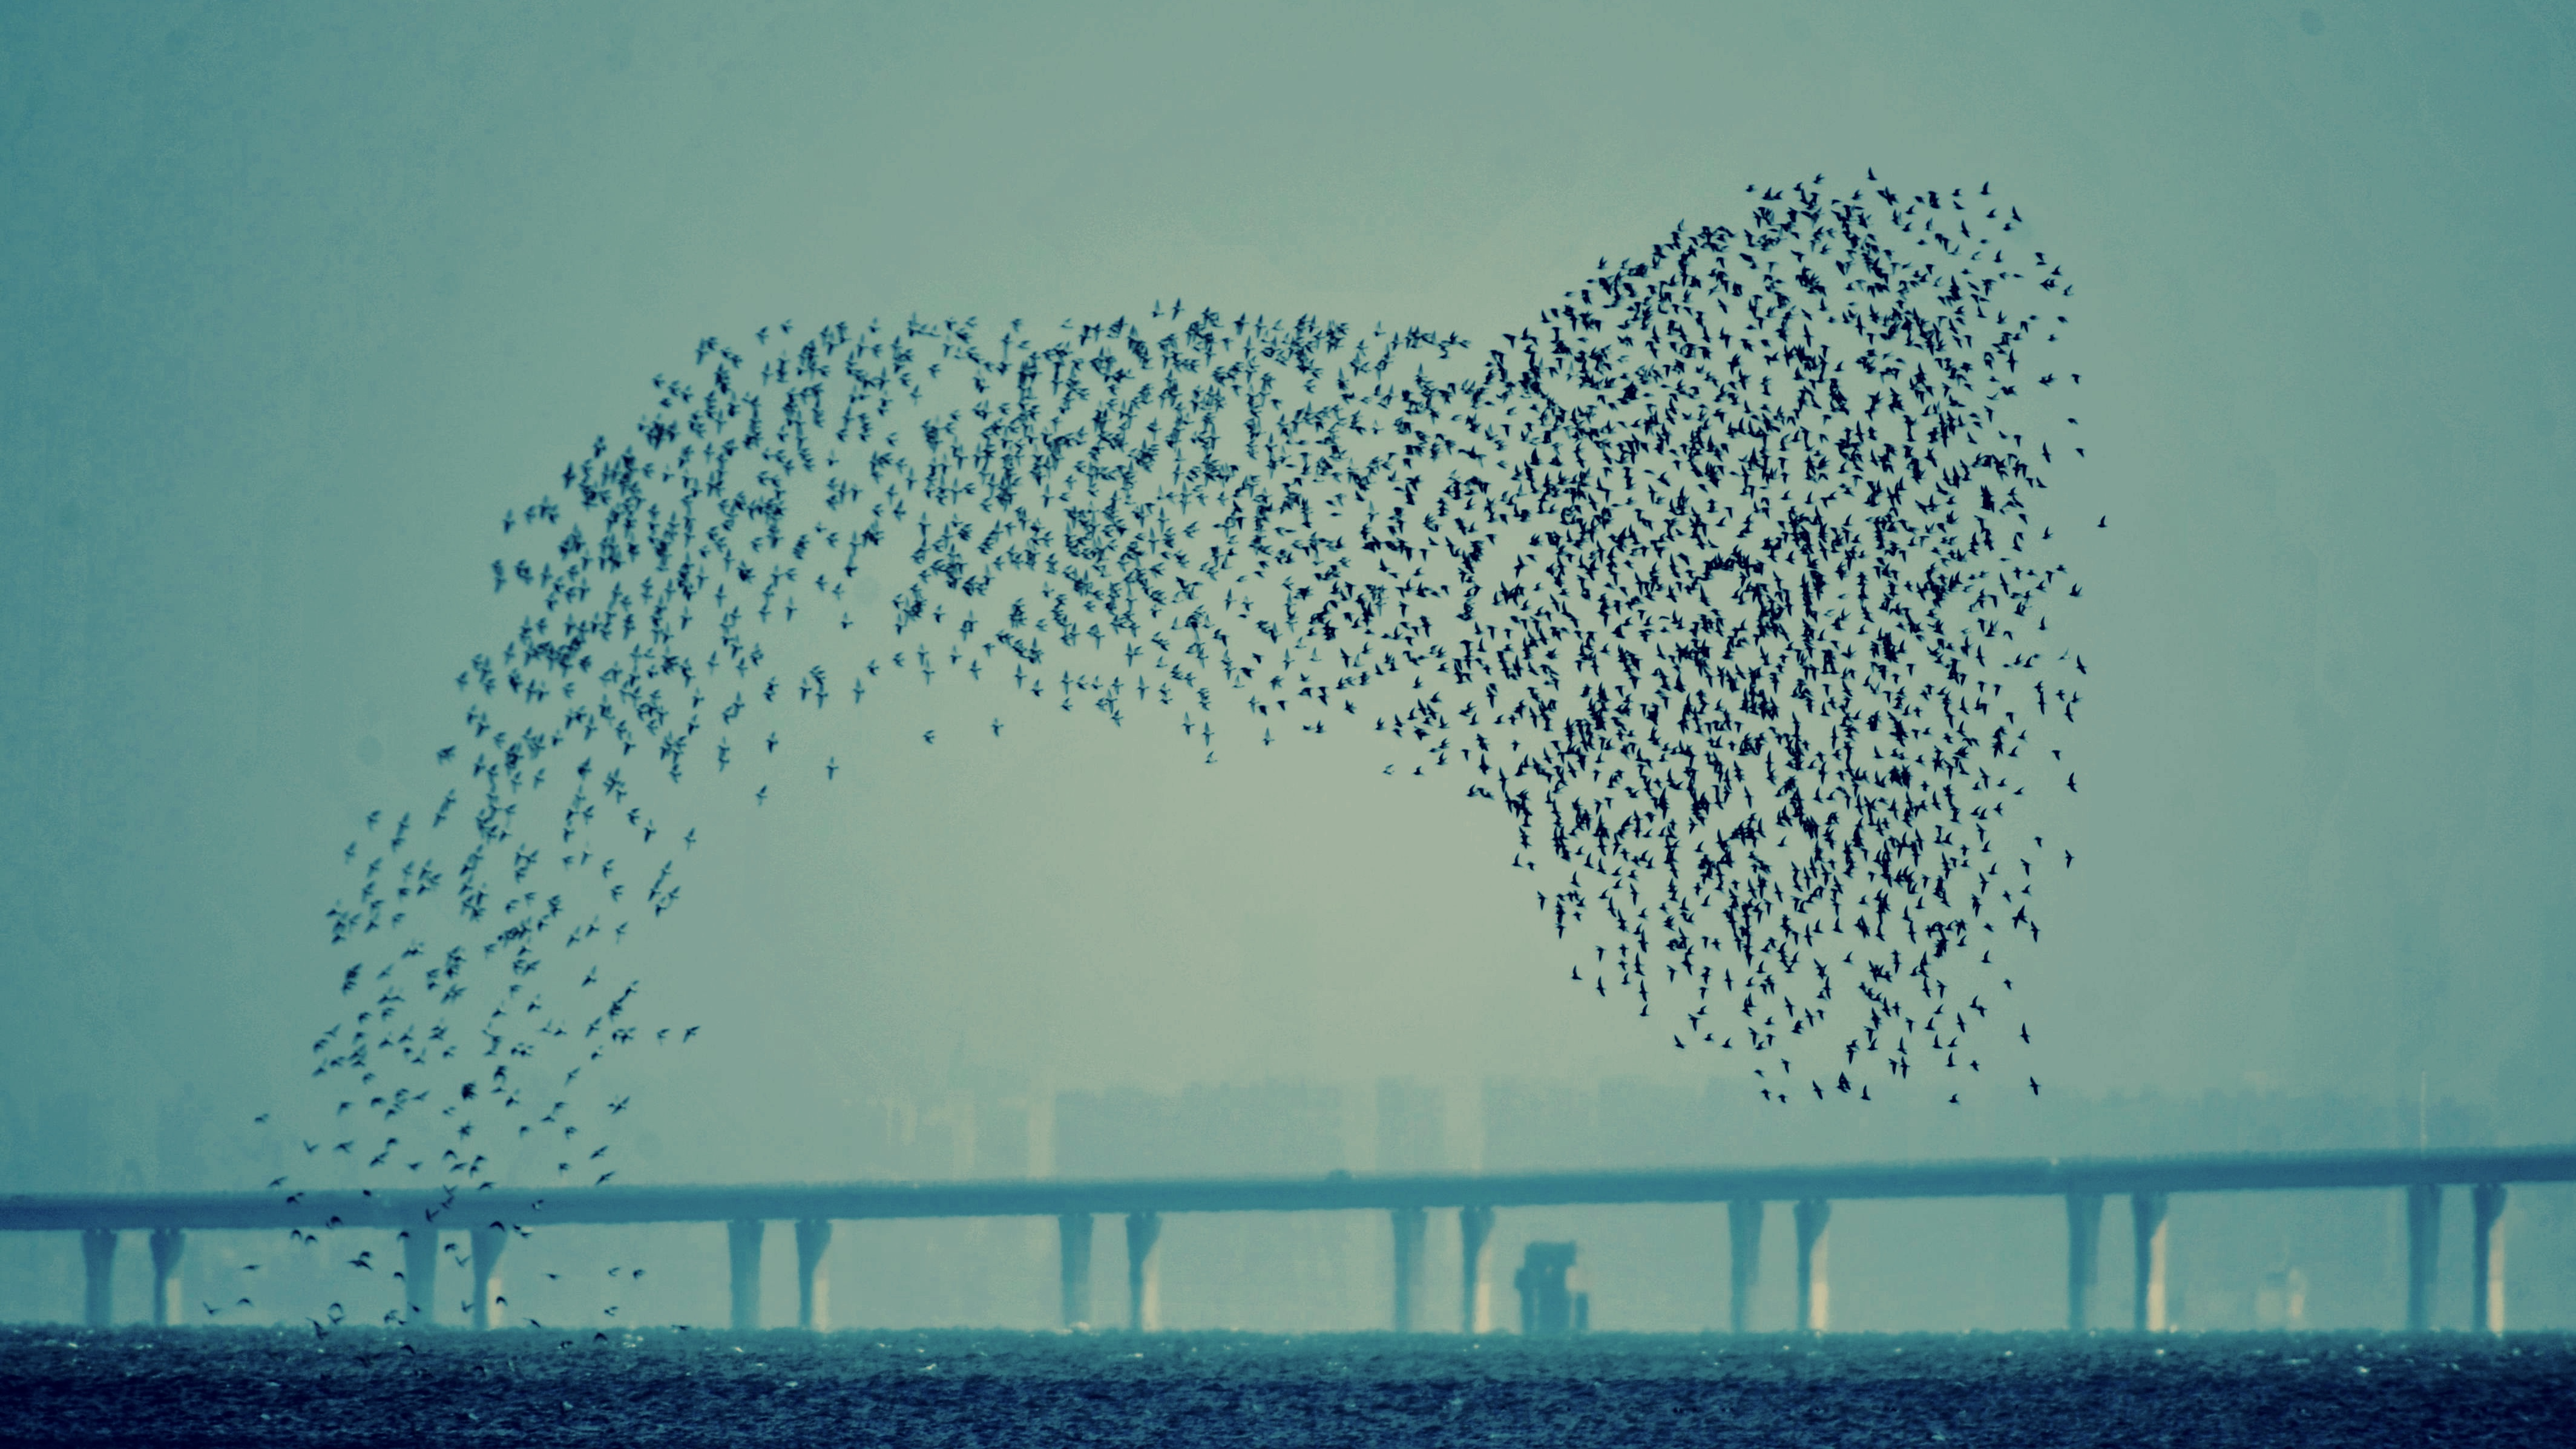 A murmuration of migrating oystercatchers in Qingdao.